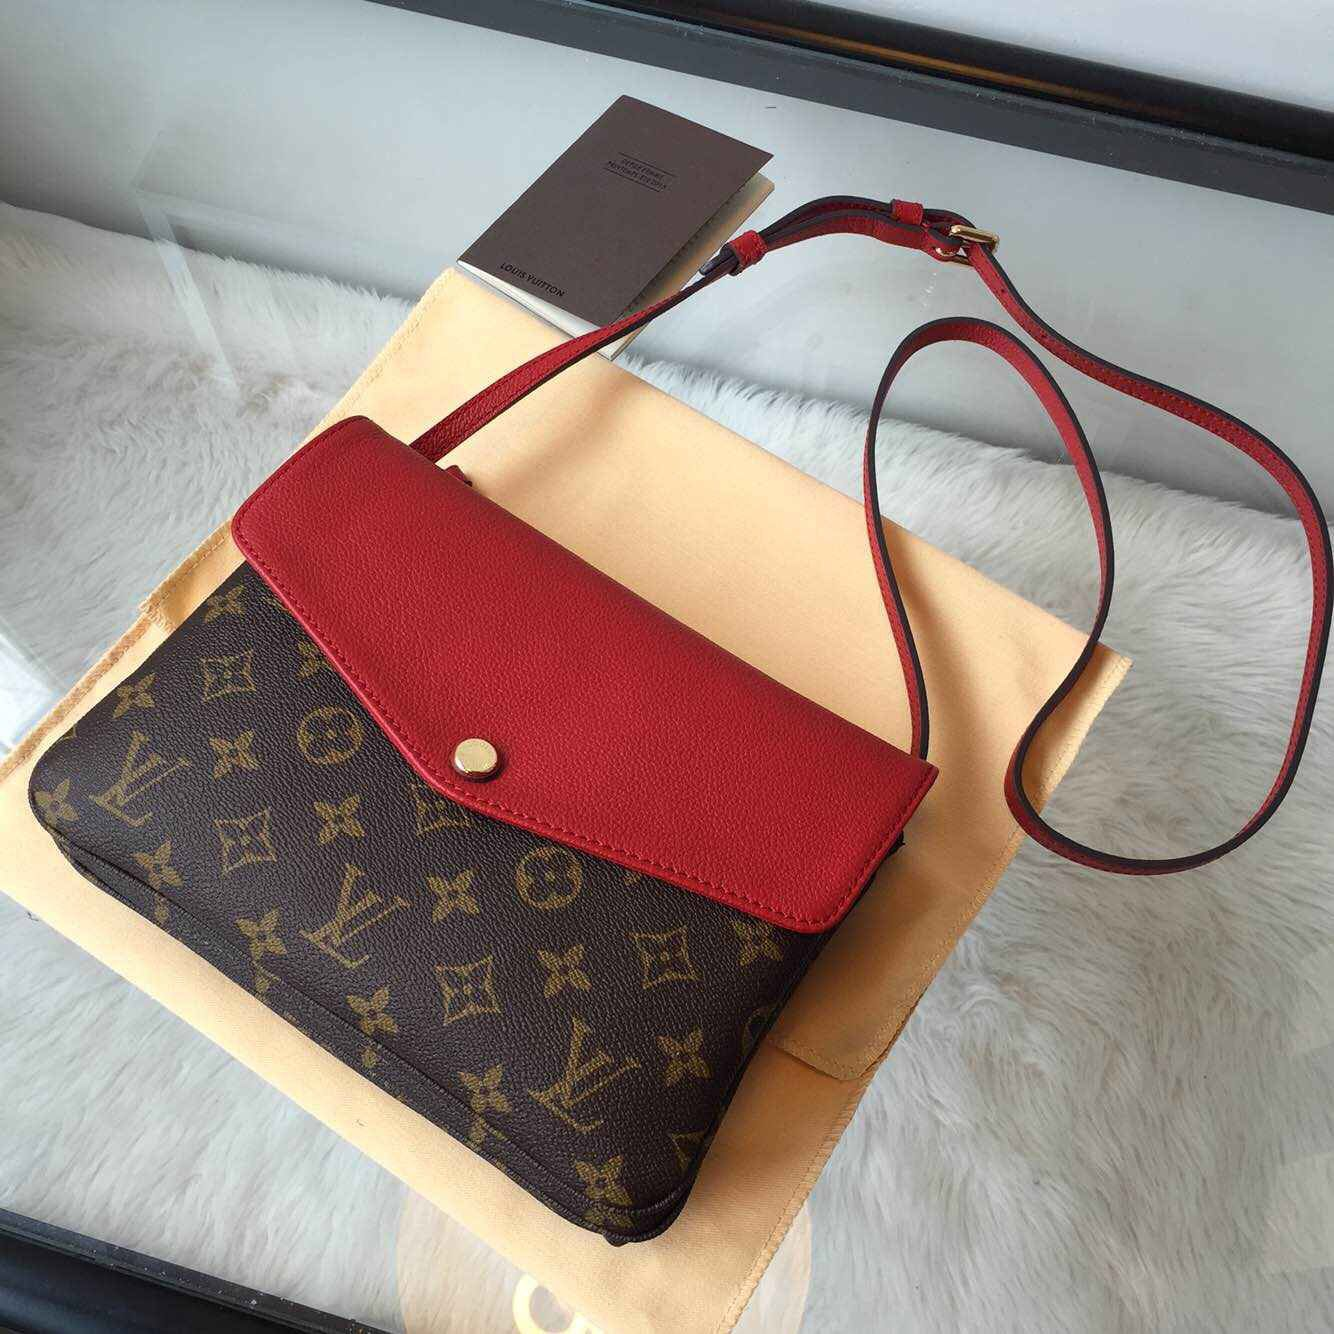 851dabed609c best Louis Vuitton Crossbody Bag Strap image collection